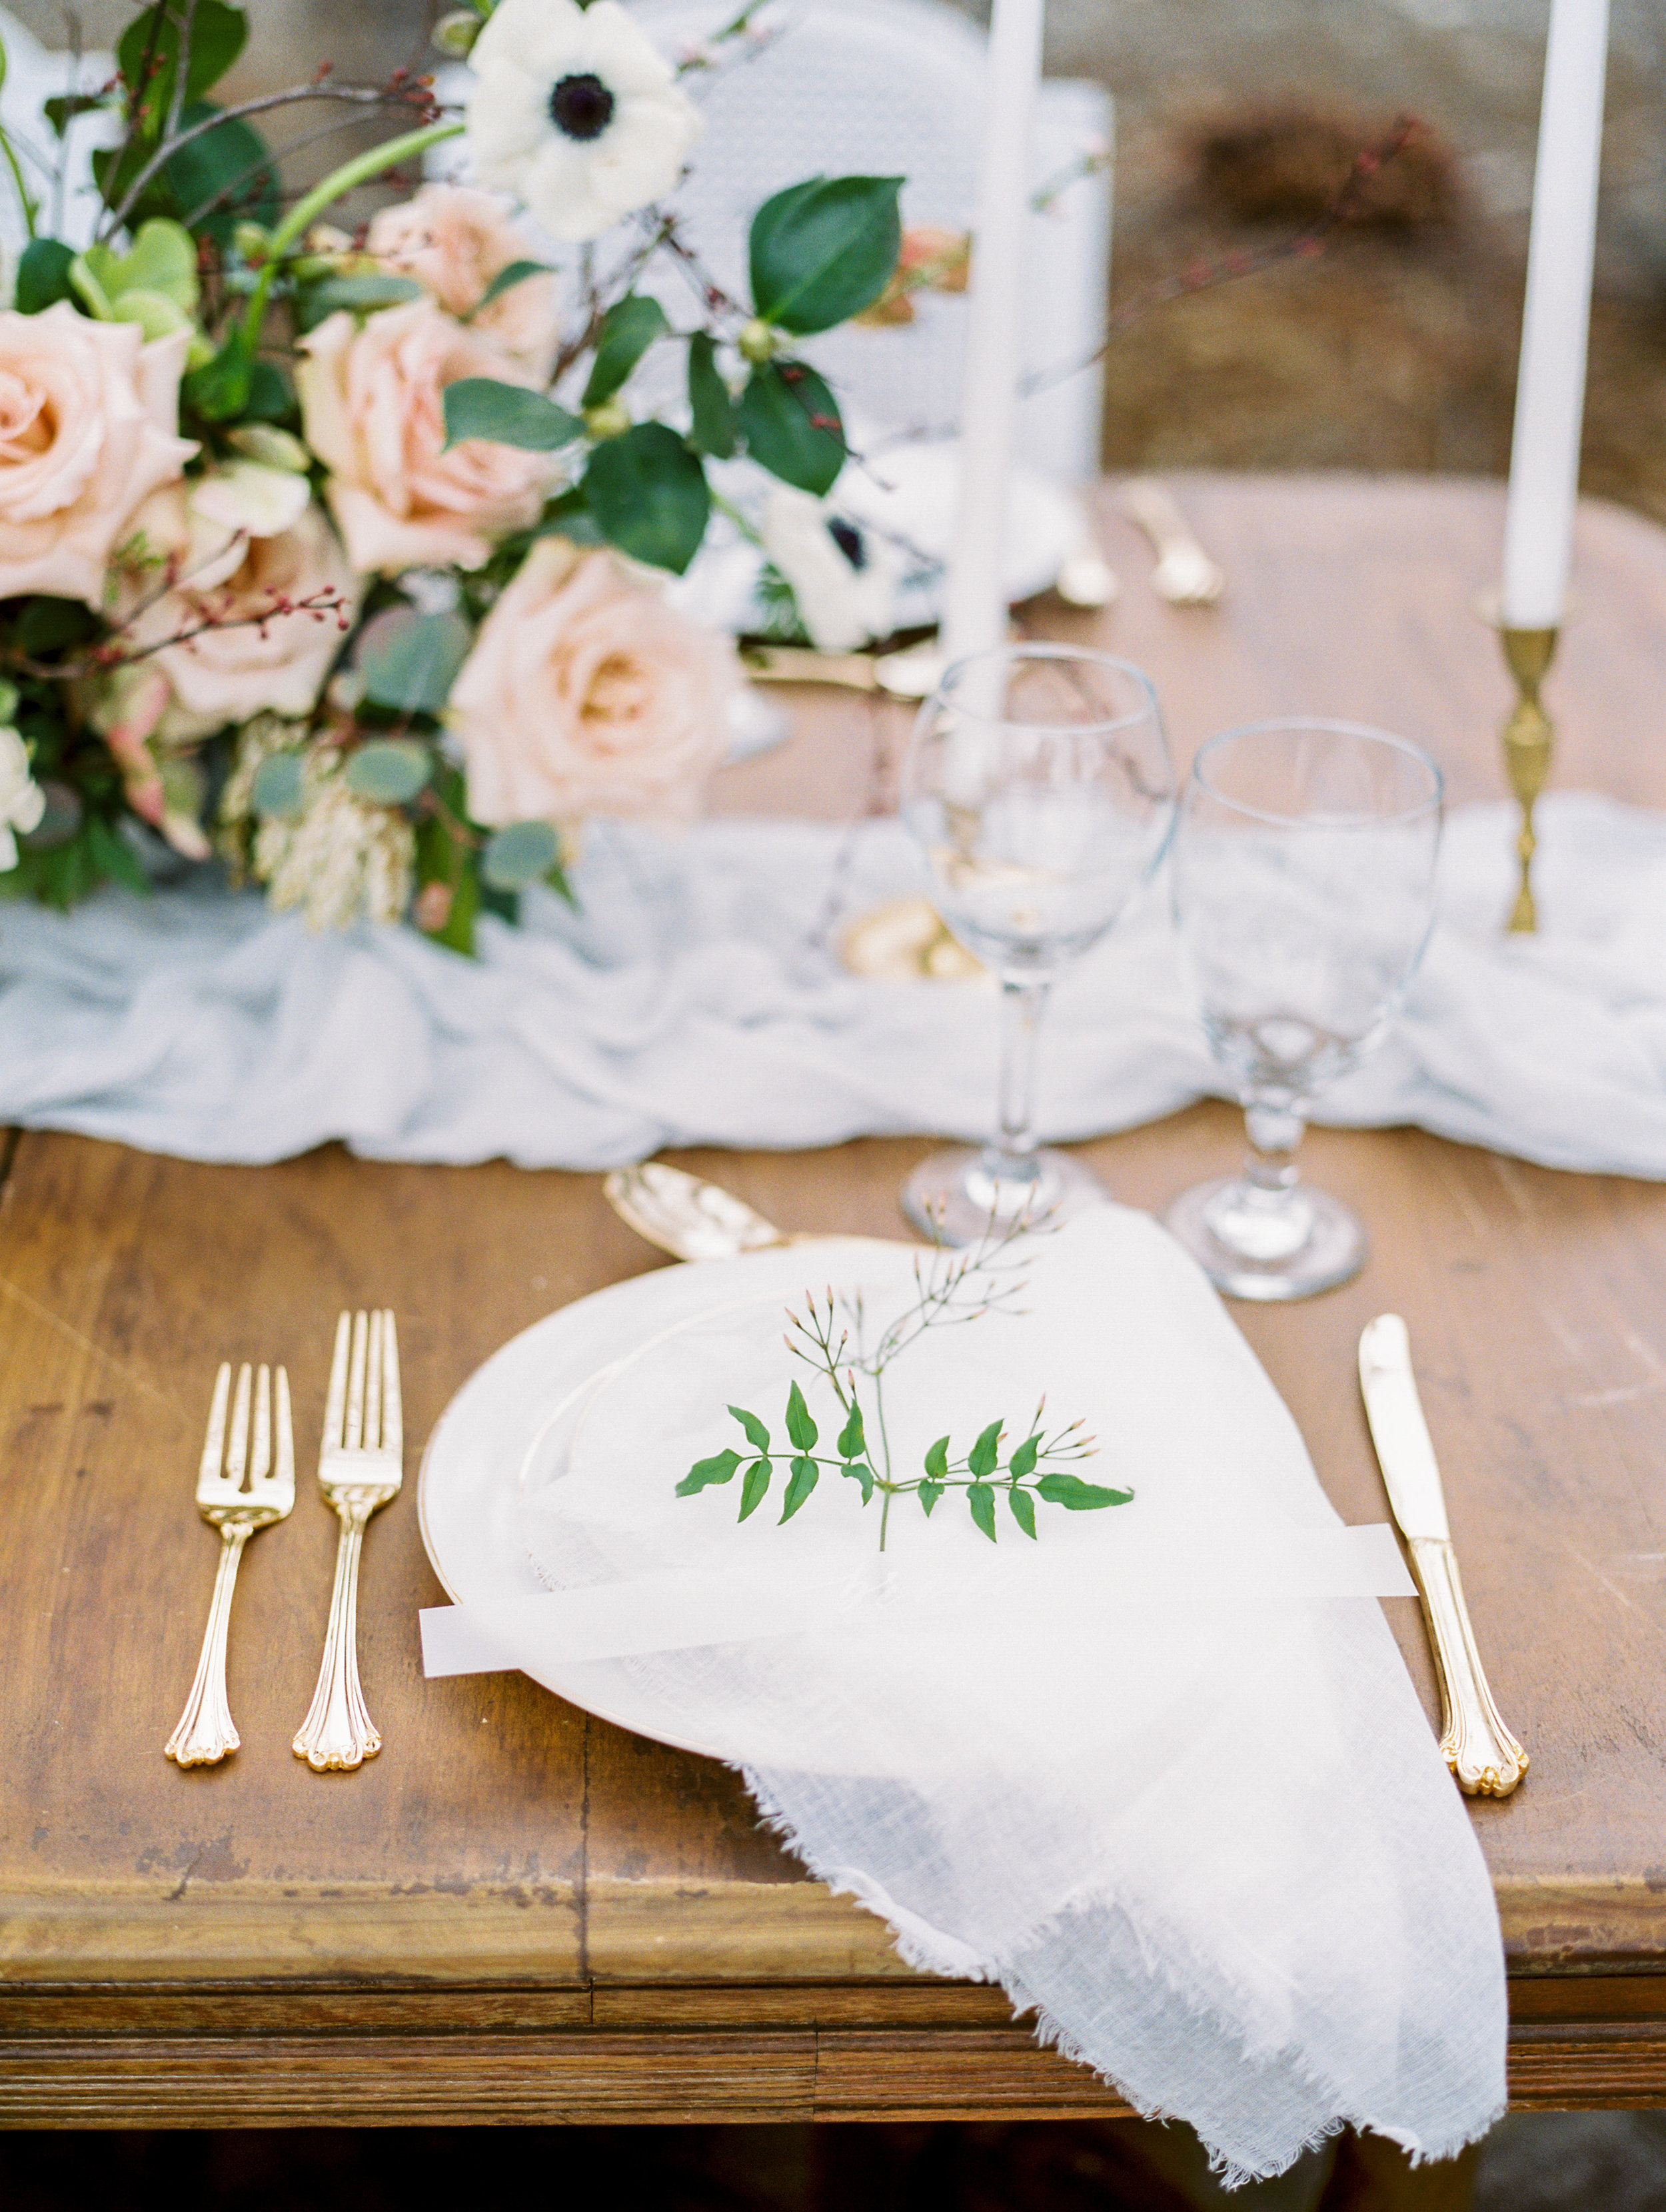 Tablescape-0236.jpg